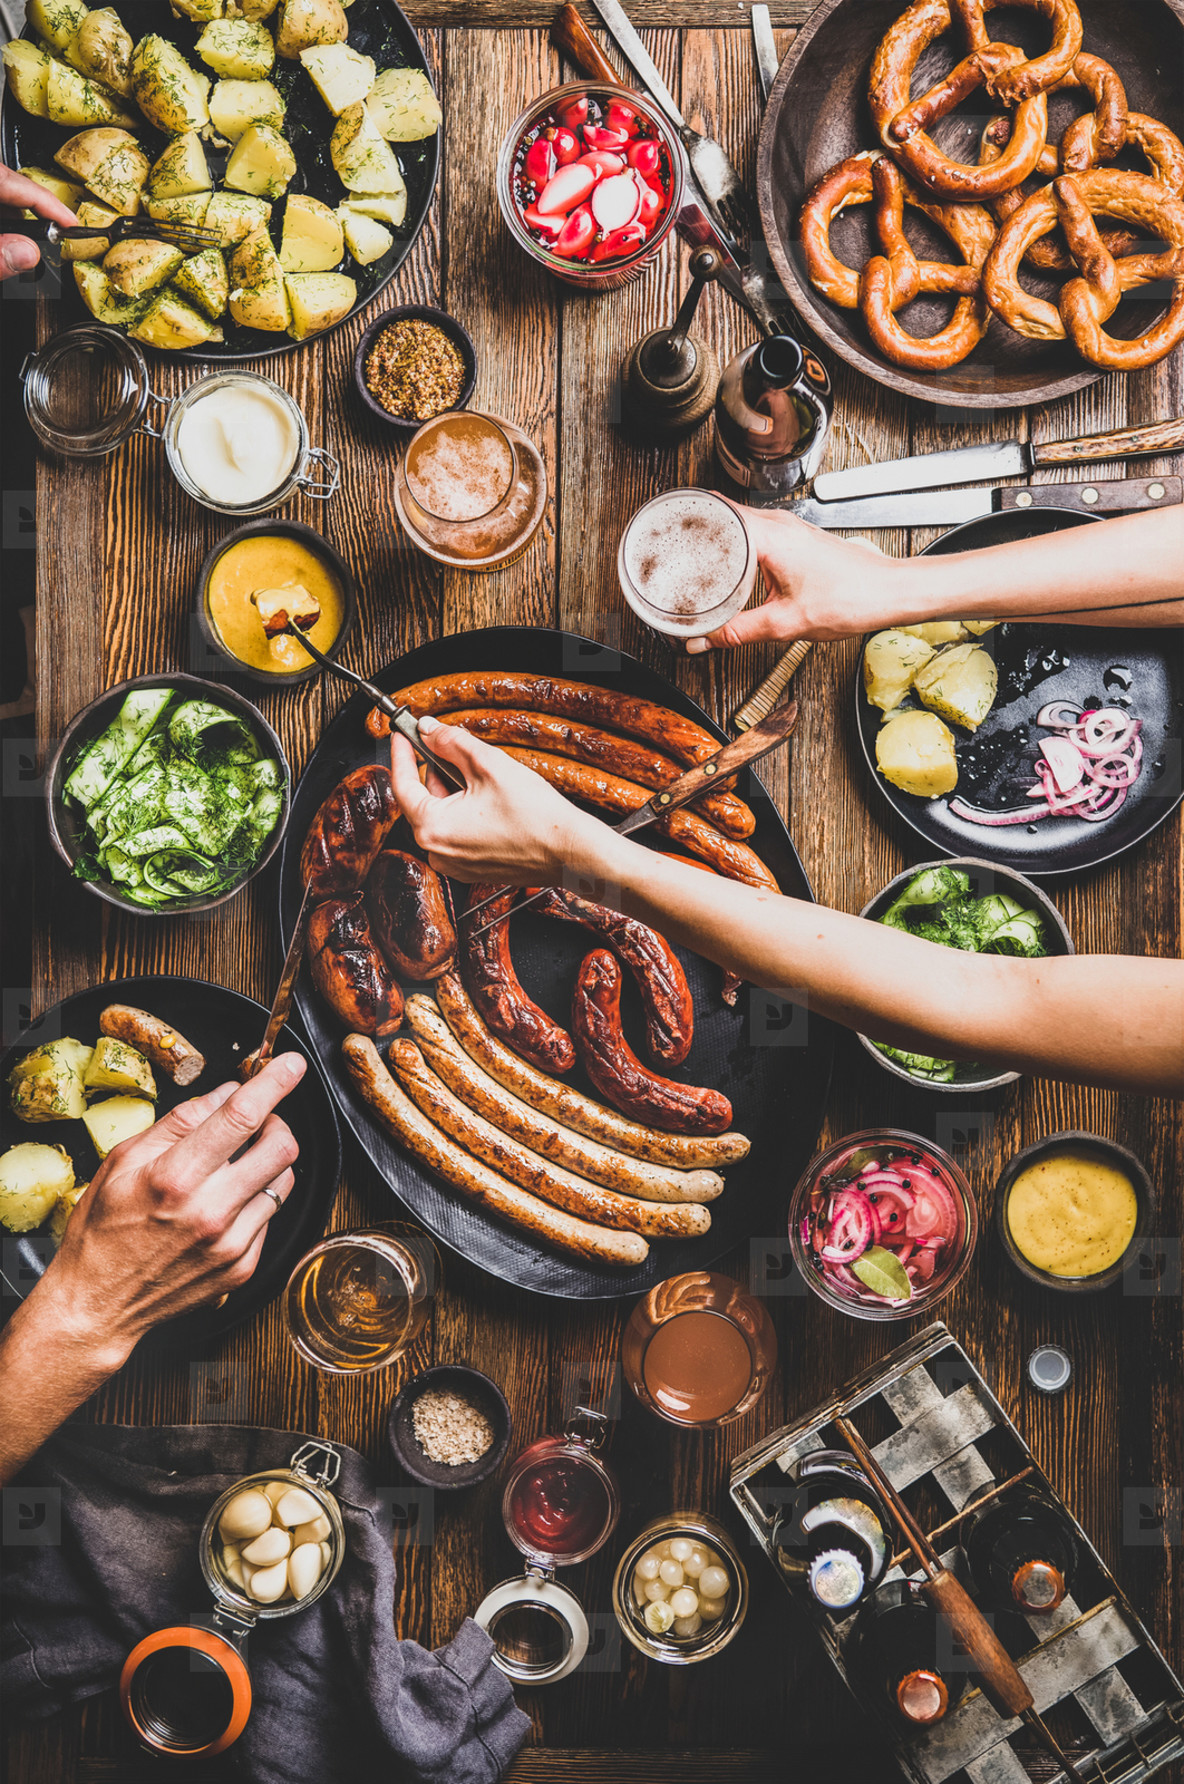 Octoberfest dinner table with beers  sausages  peoples hands with snacks